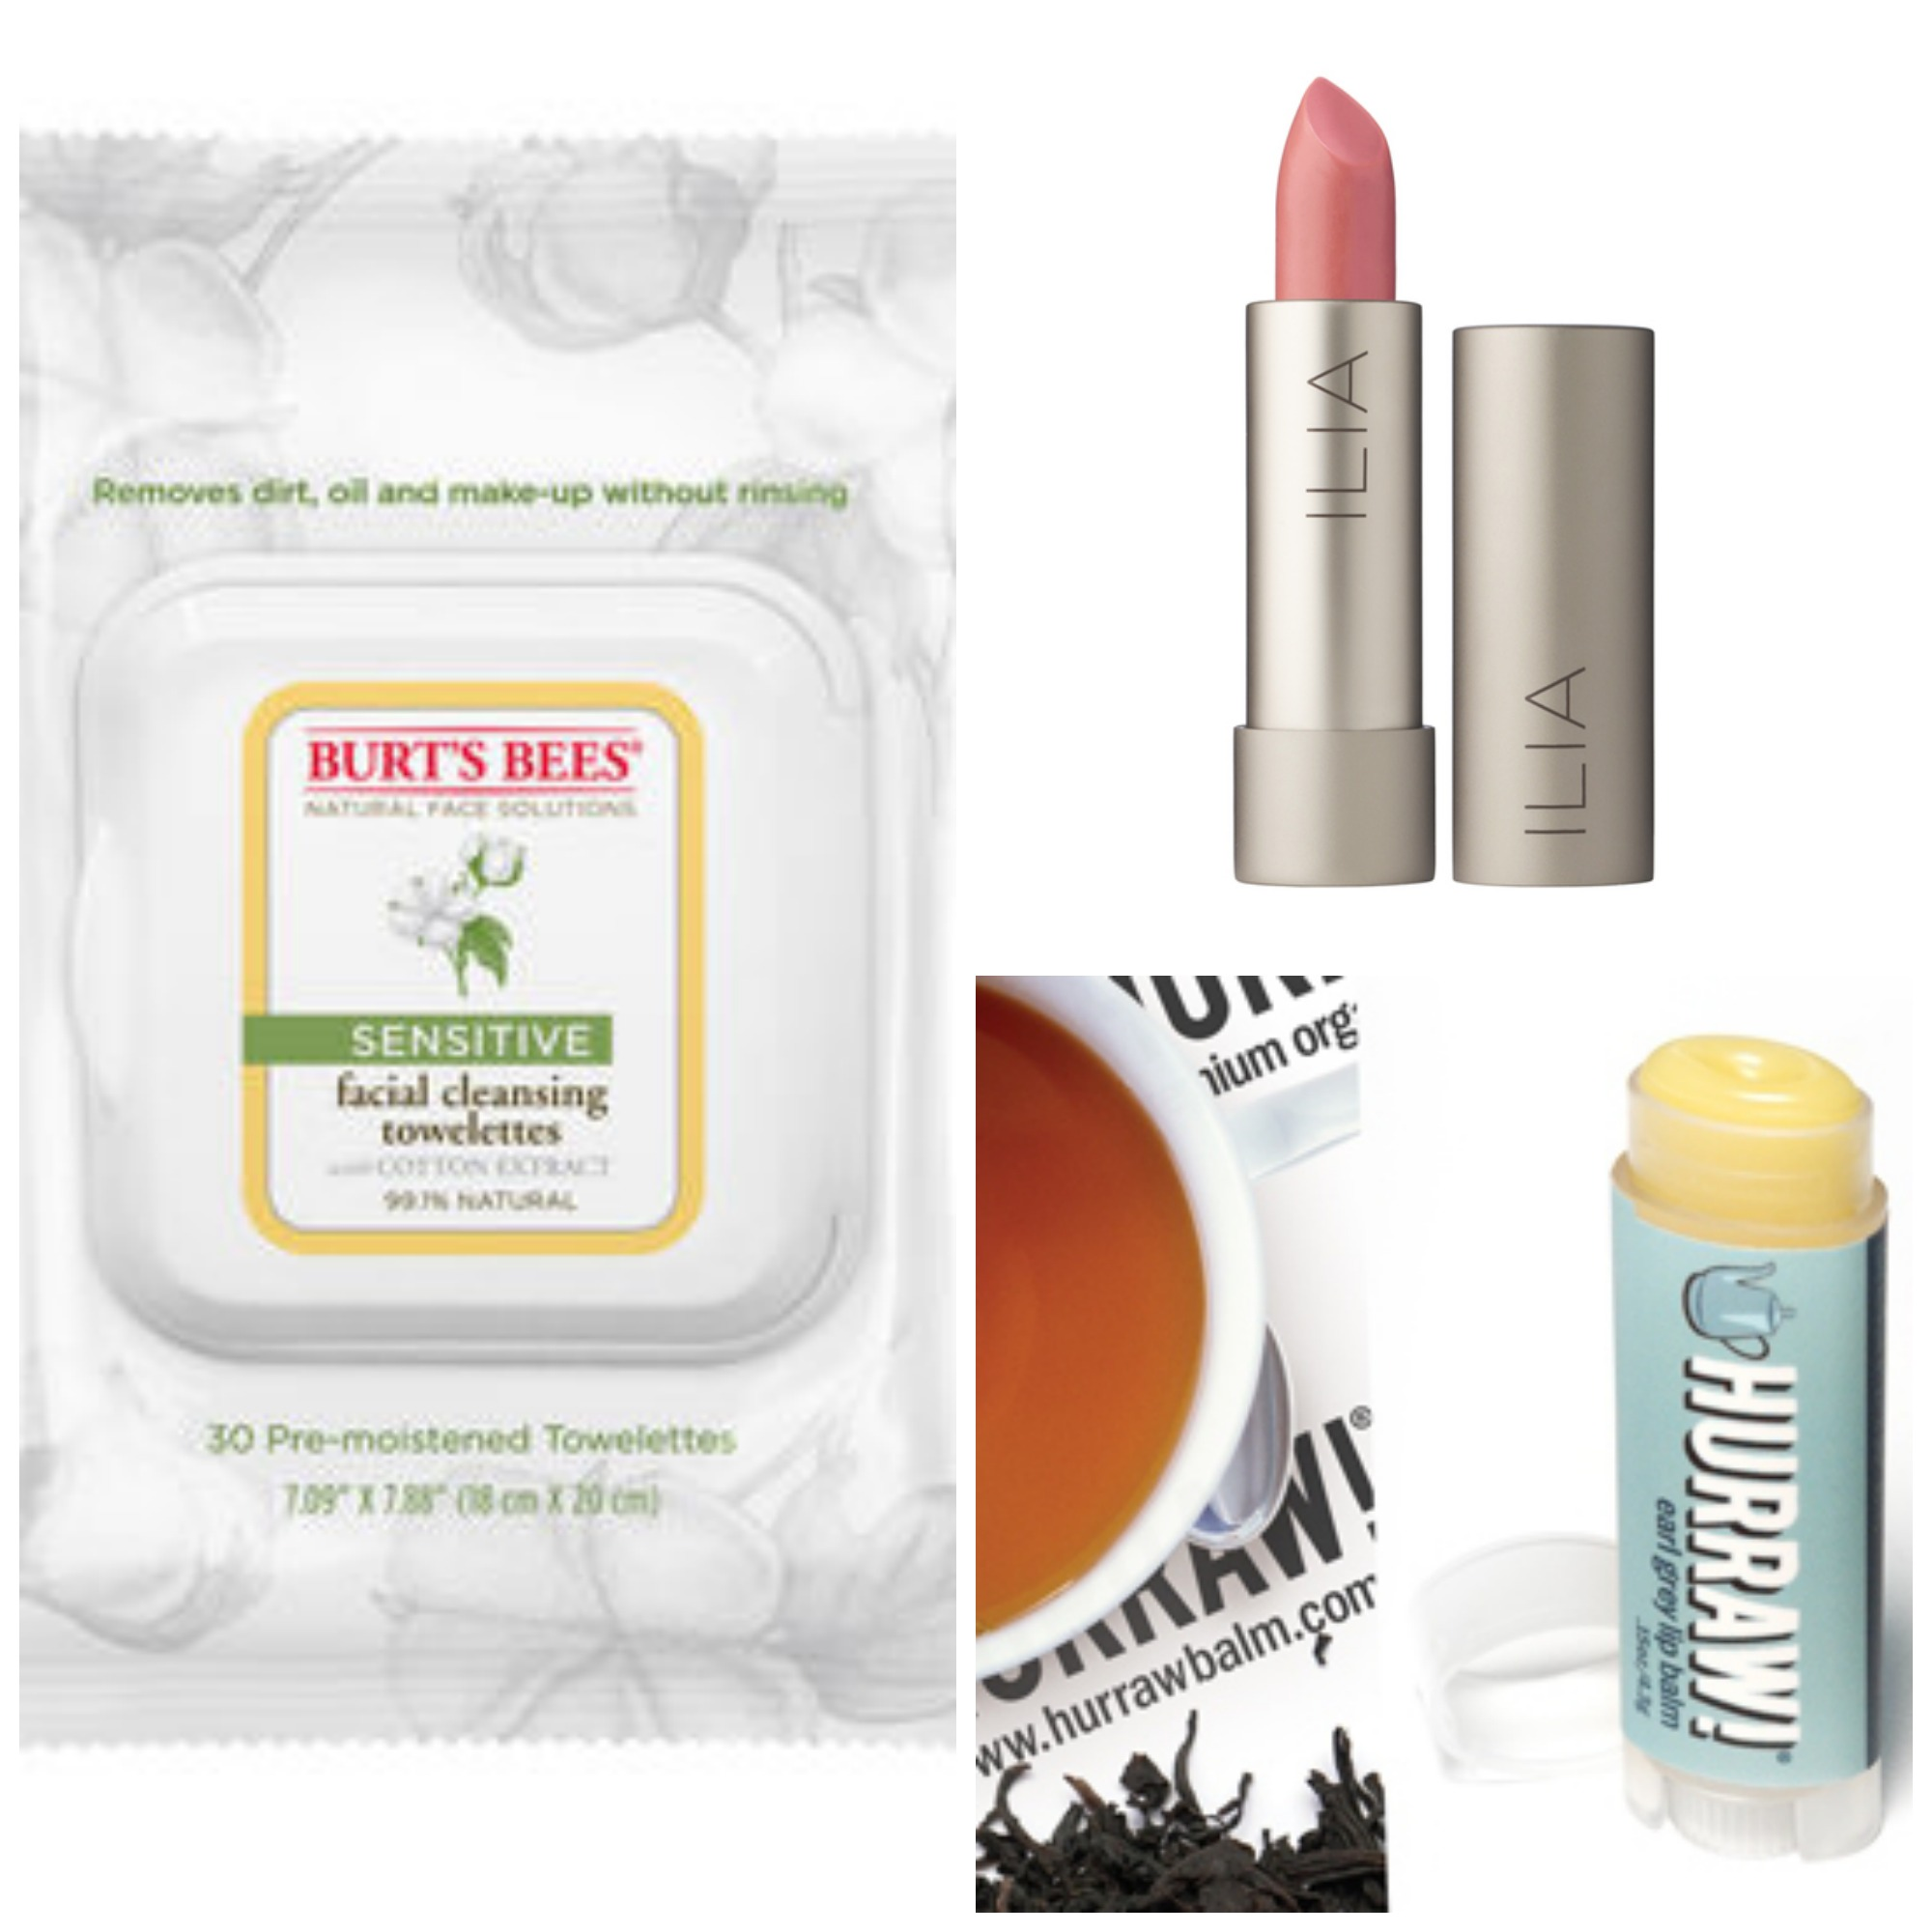 Burt's Bees Sensitive Facial Cleansing Towelettes ($6.00)  |  Ilia Lipstick ($26) shown in In My Room  |  Hurraw! Lip Balms ($3.79, price varies depending on kind) shown in Earl Grey